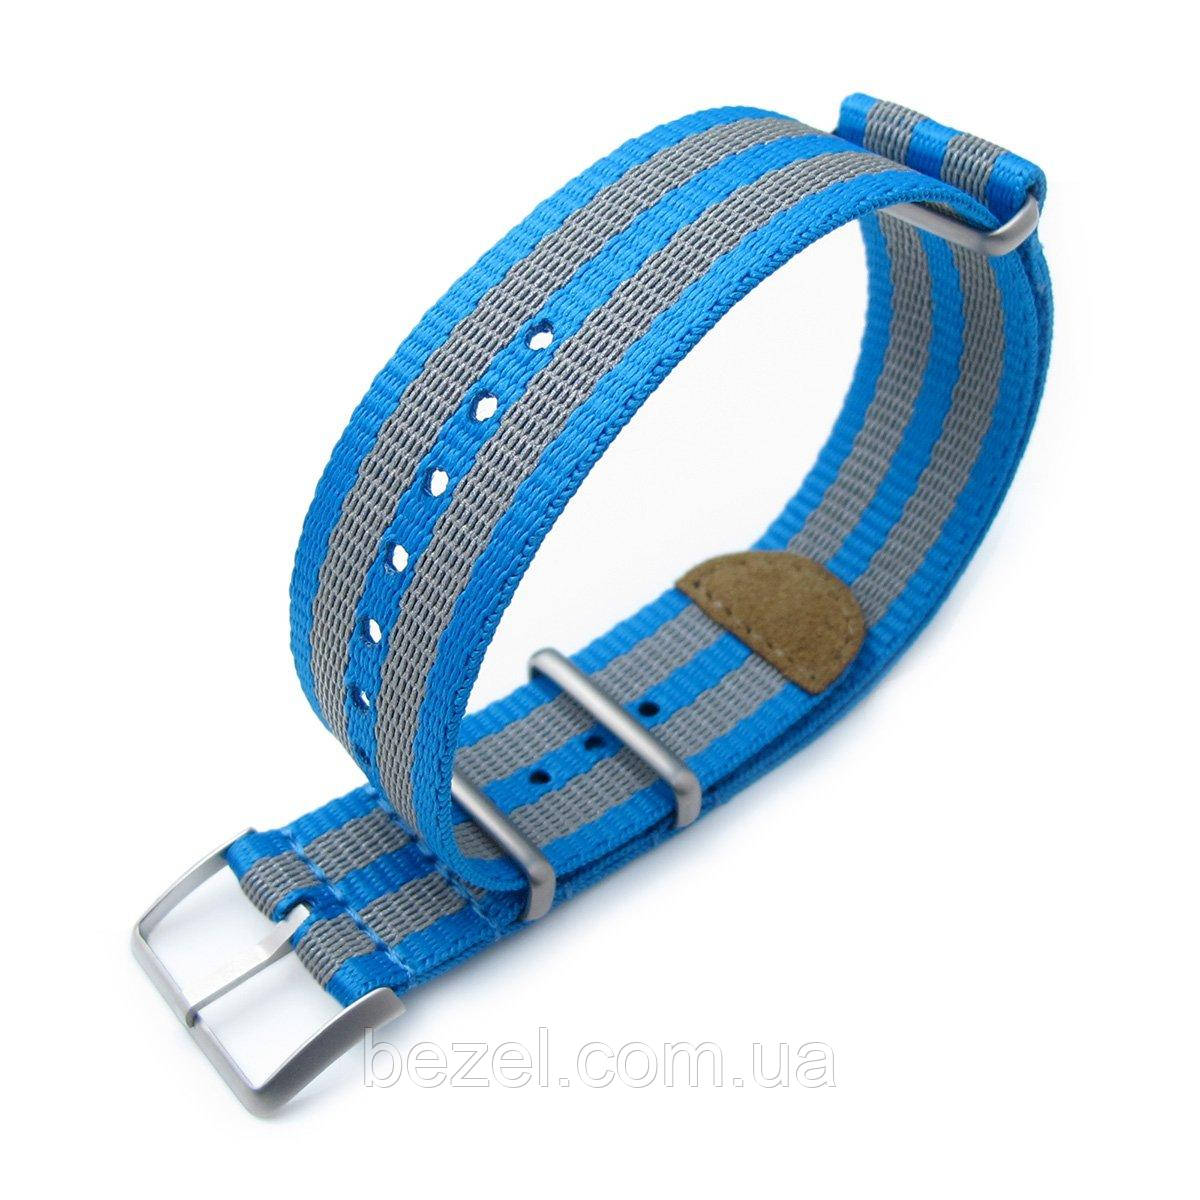 MiLTAT 22mm G10 NATO 3M Glow-in-the-Dark Watch Strap, Brushed - Blue and Grey Stripes